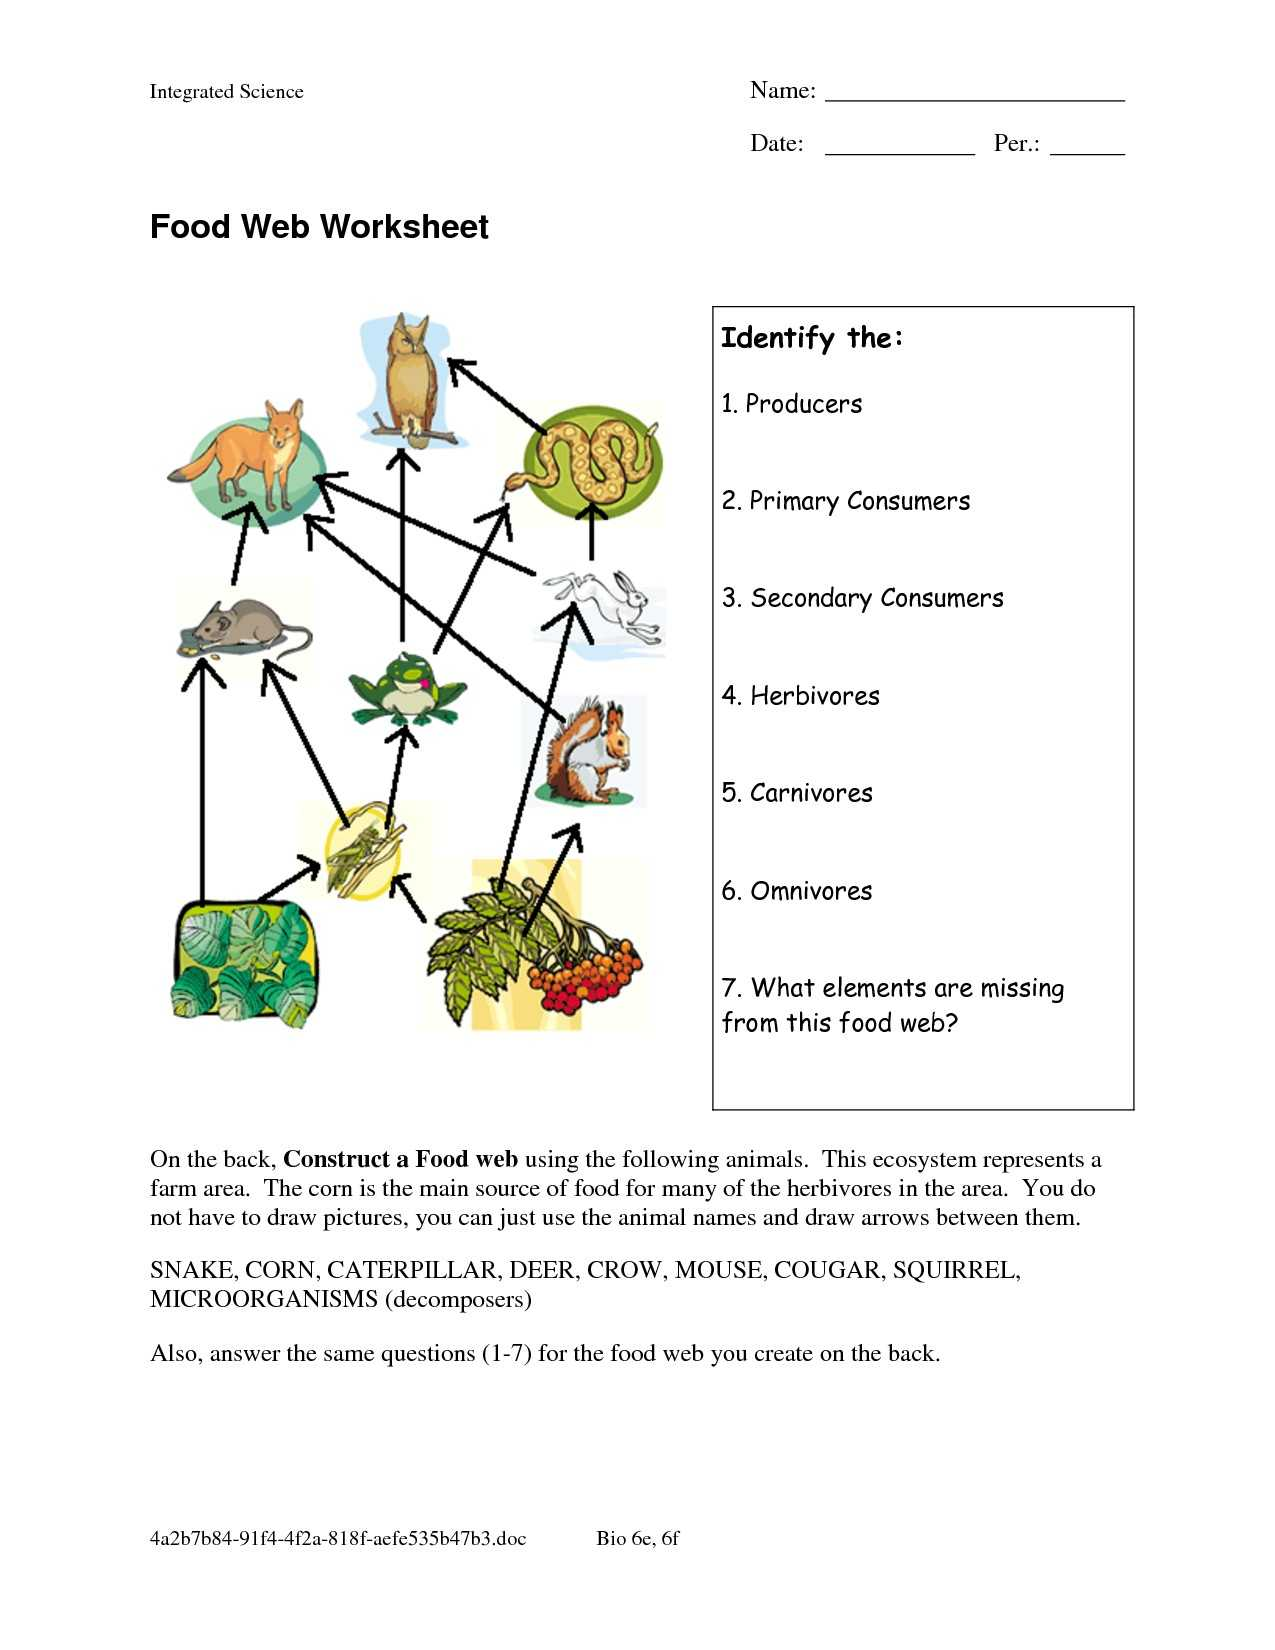 Wolves In Yellowstone Student Worksheet Answers as Well as Food Chain and Food Web Worksheet Choice Image Worksheet for Kids